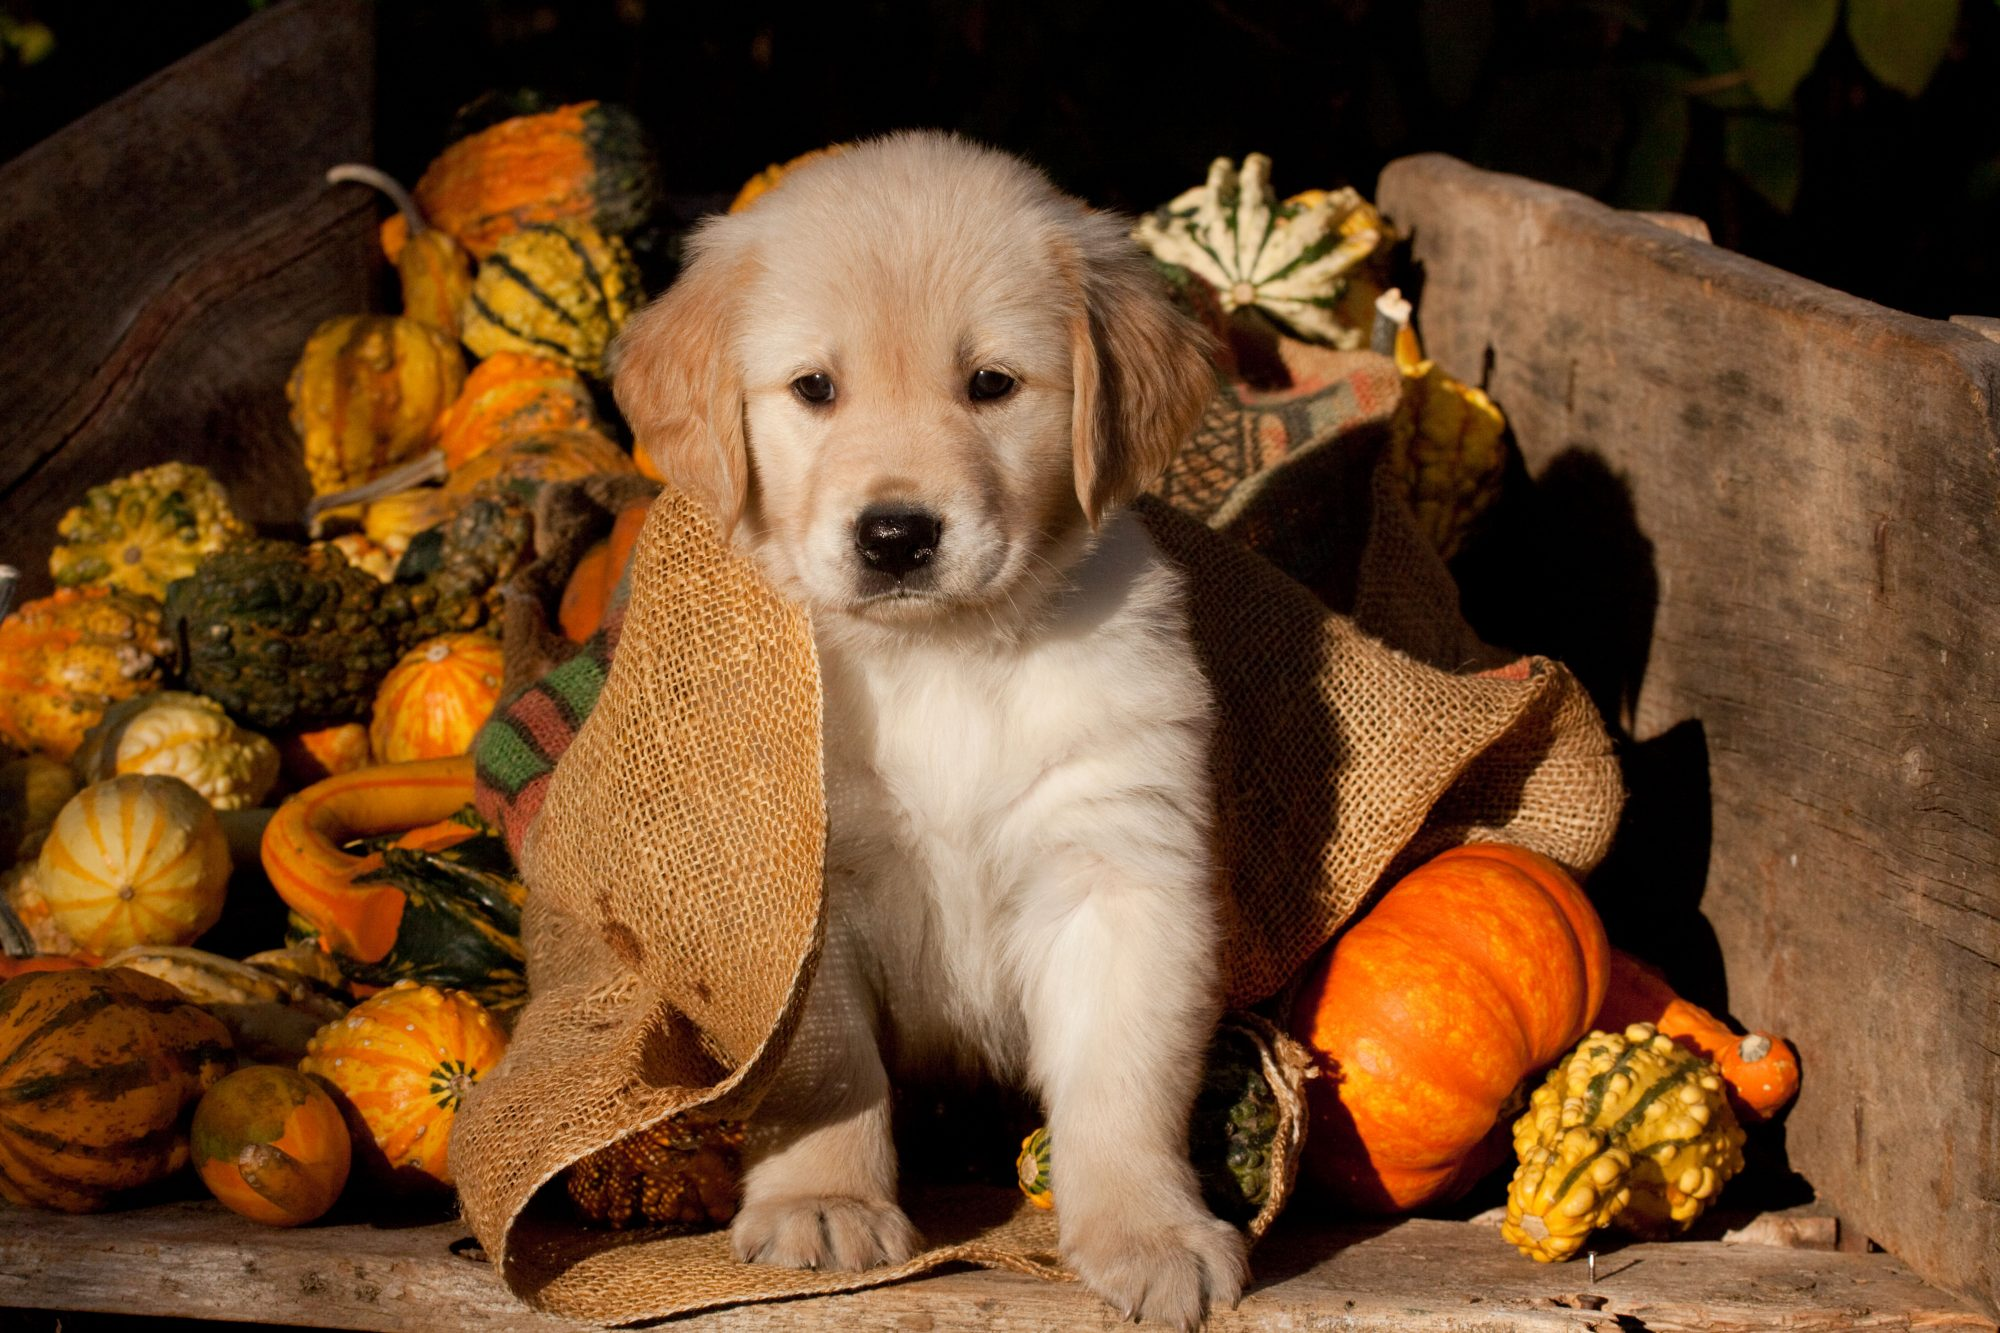 Golden Retriever Puppy Amongst Gourds